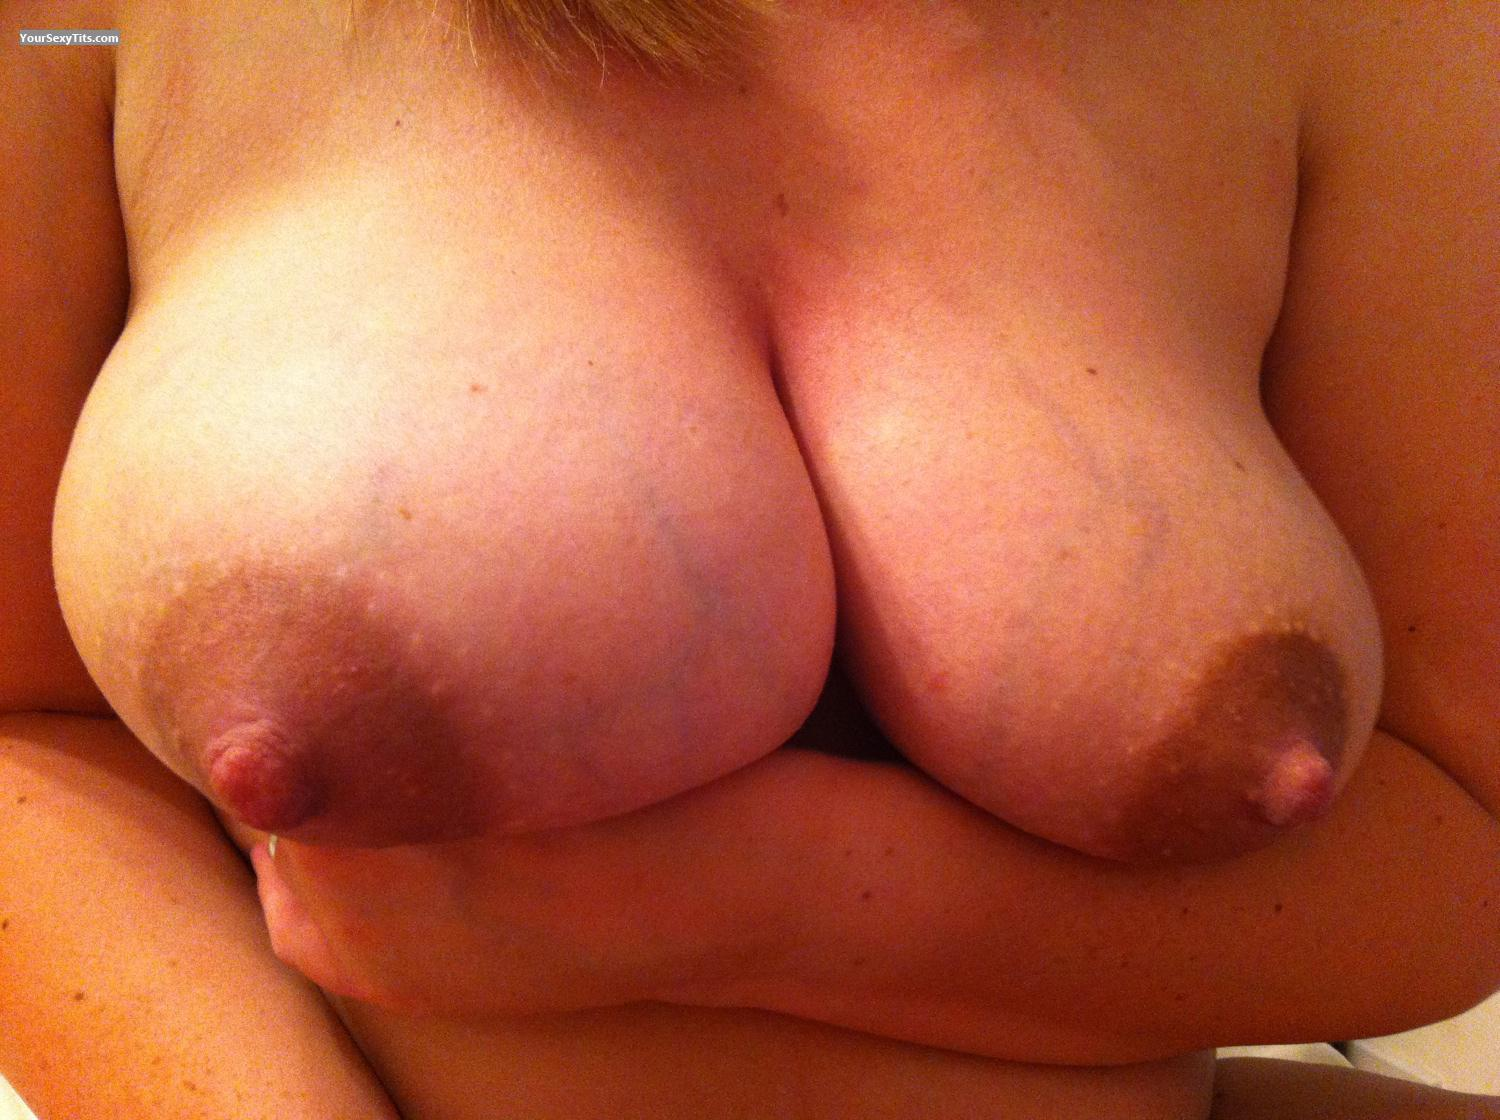 Tit Flash: Big Tits By IPhone - Lagreenie from United Kingdom